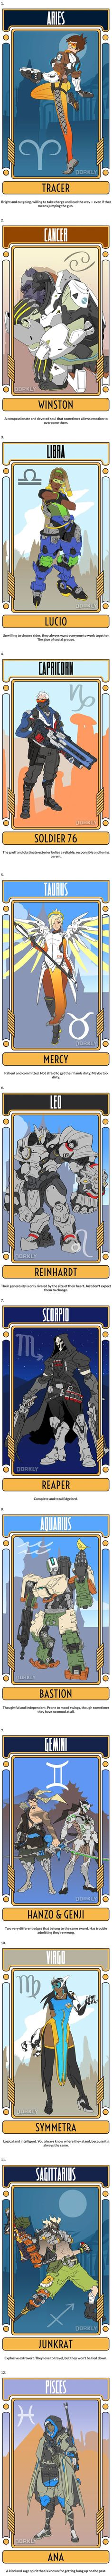 Your Zodiac Sign As Represented by Overwatch Characters